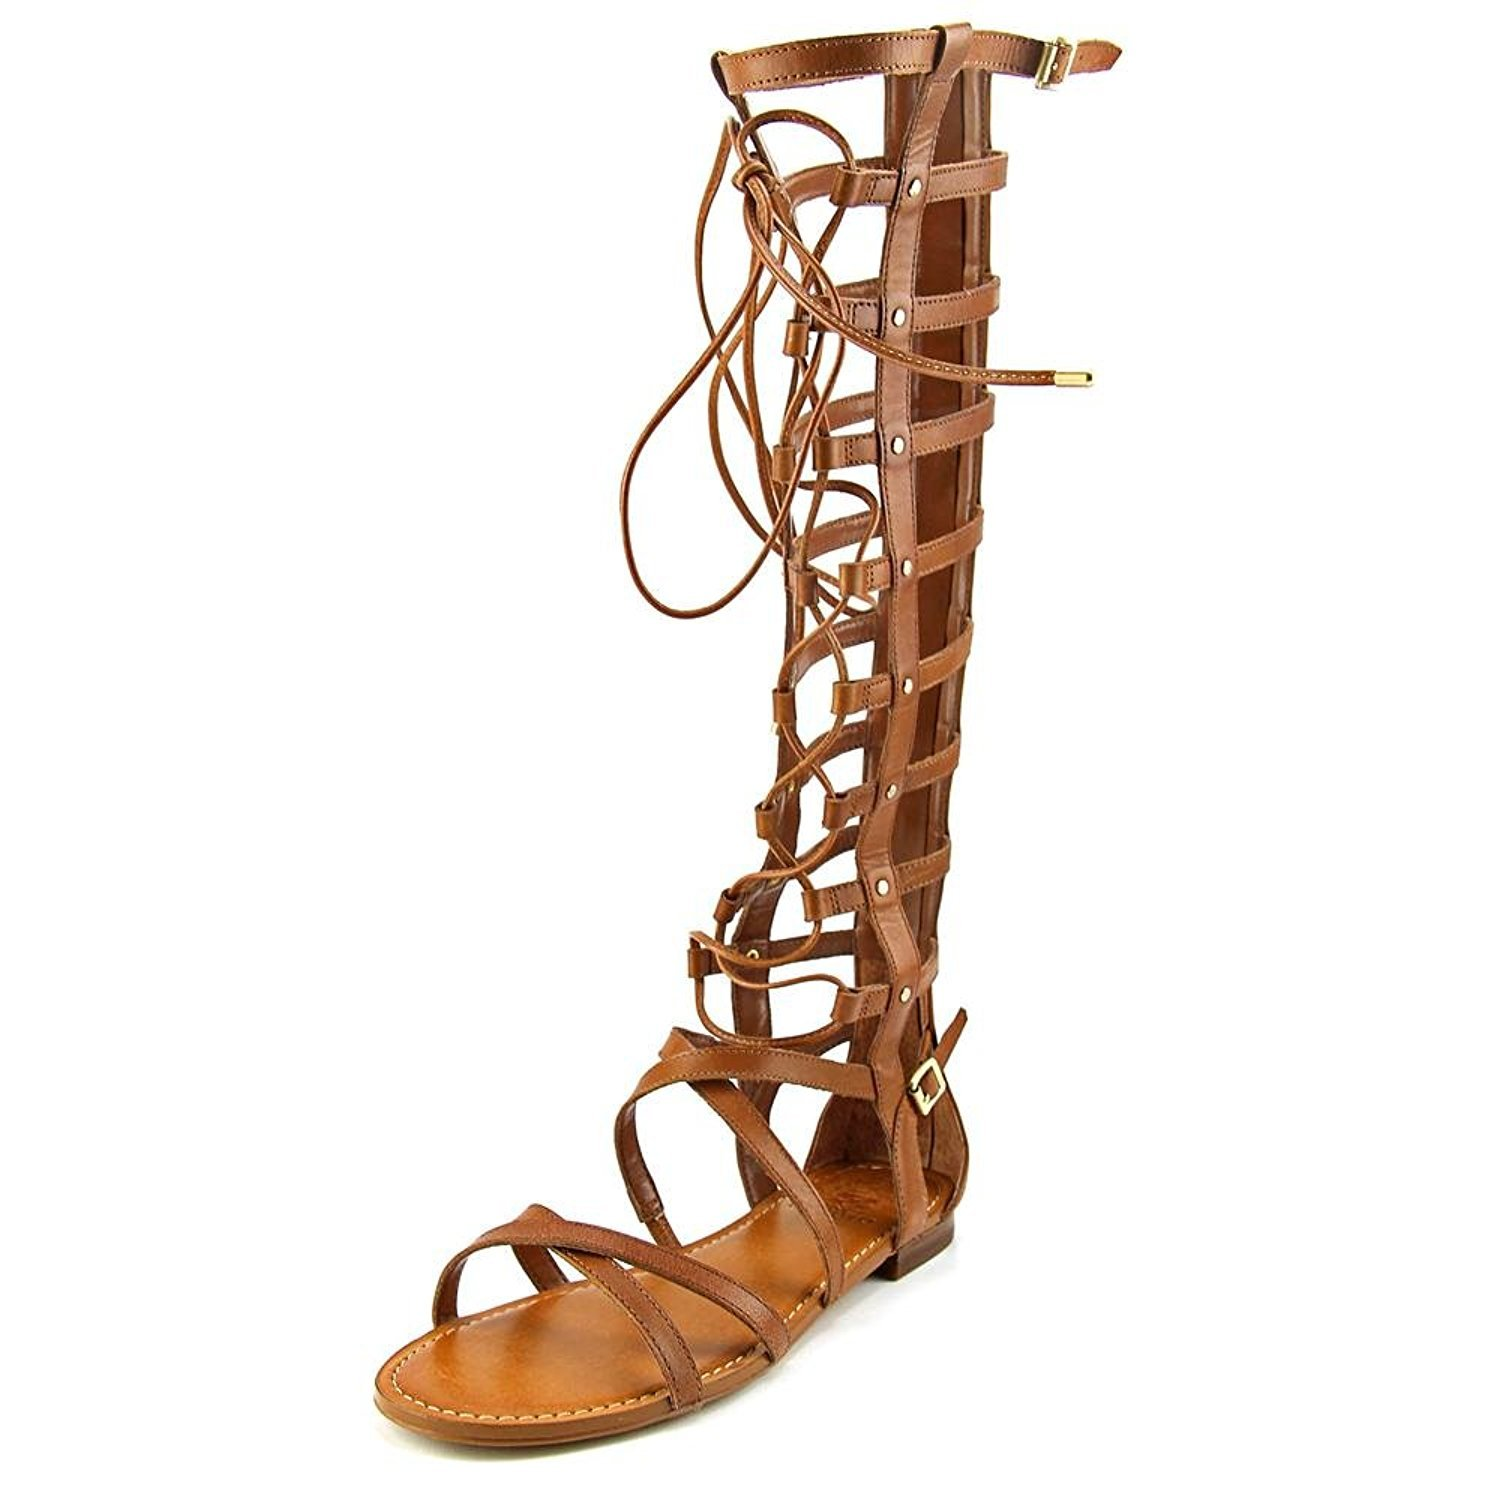 Vince Camuto Womens Mesta Open, Summer Cognac Vintage Leather1030137, Size 7.0